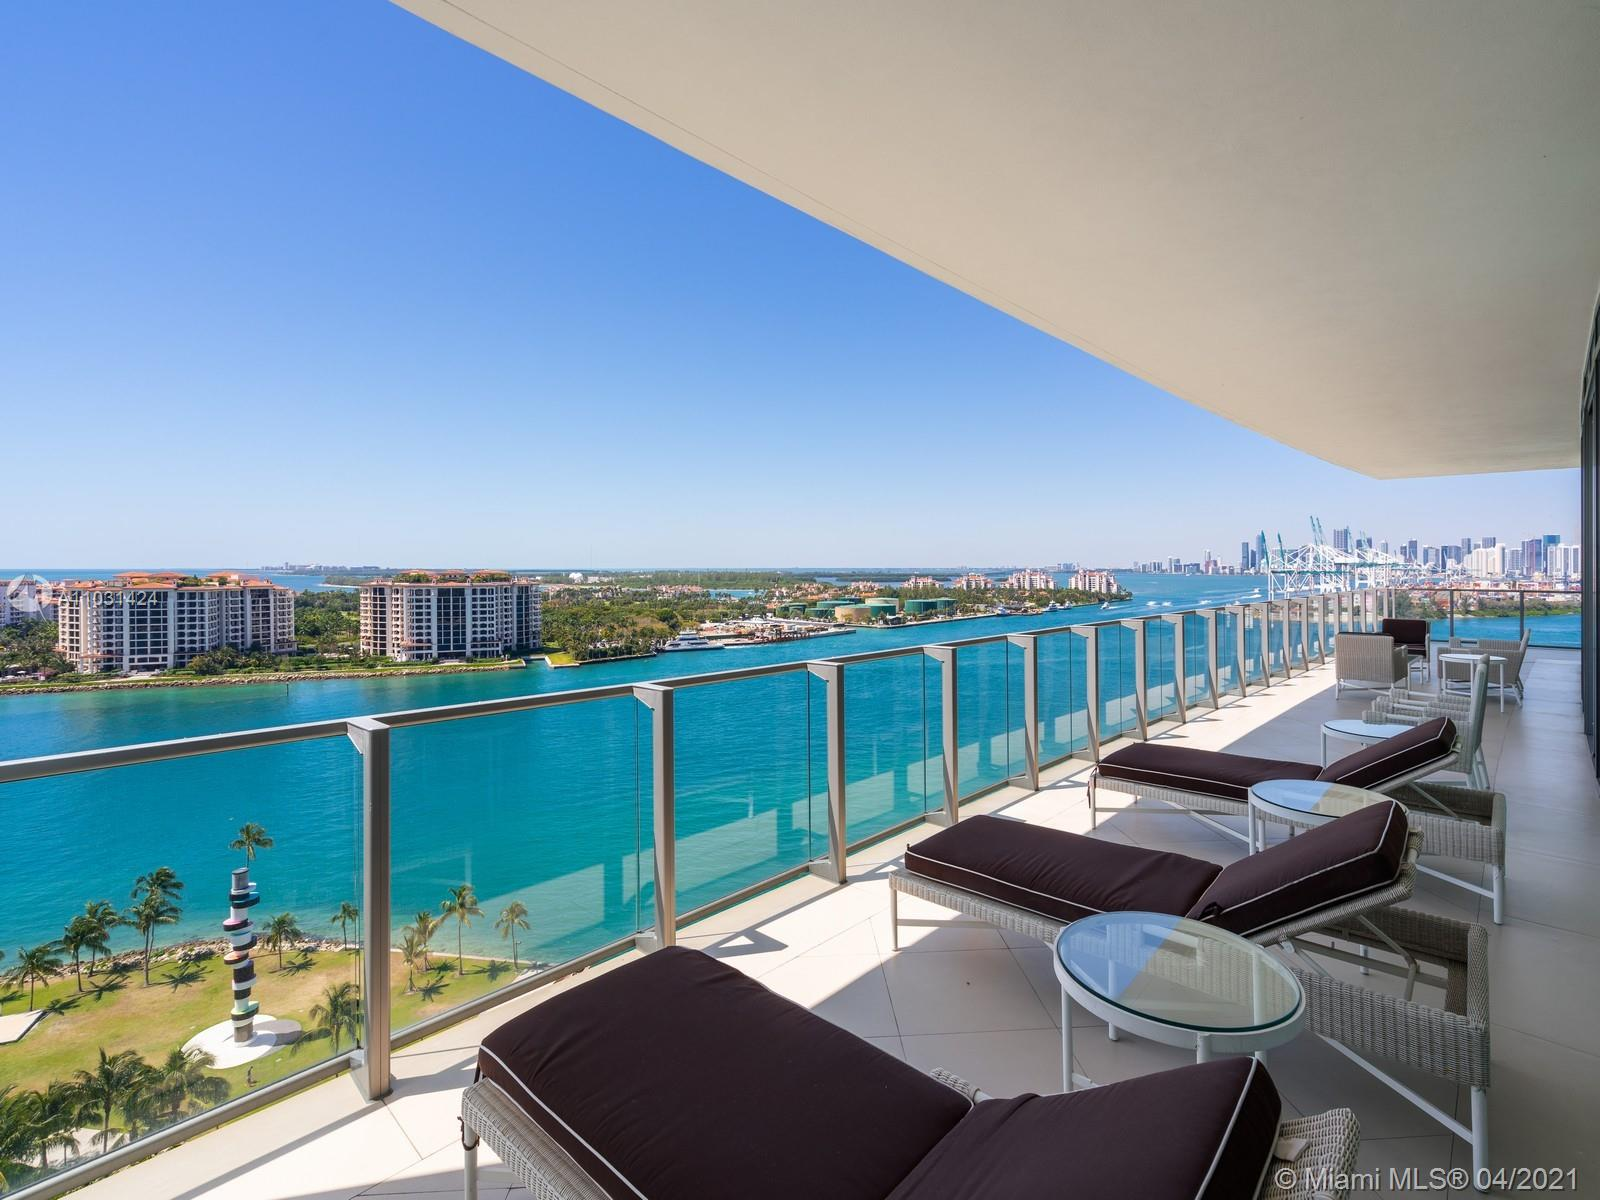 Very Unique and luxurious corner Unit at the Prestigious Apogee South Beach Residence. Completely renovated 04 line apartment featuring 3 bed 3.5 baths, a media room,  beautiful ocean views from an 11 Ft wide terrace, that itself provides a much needed summer kitchen. This fascinating unit also provides a gourmet kitchen with top of the line appliances, private elevator and much more. Must see.